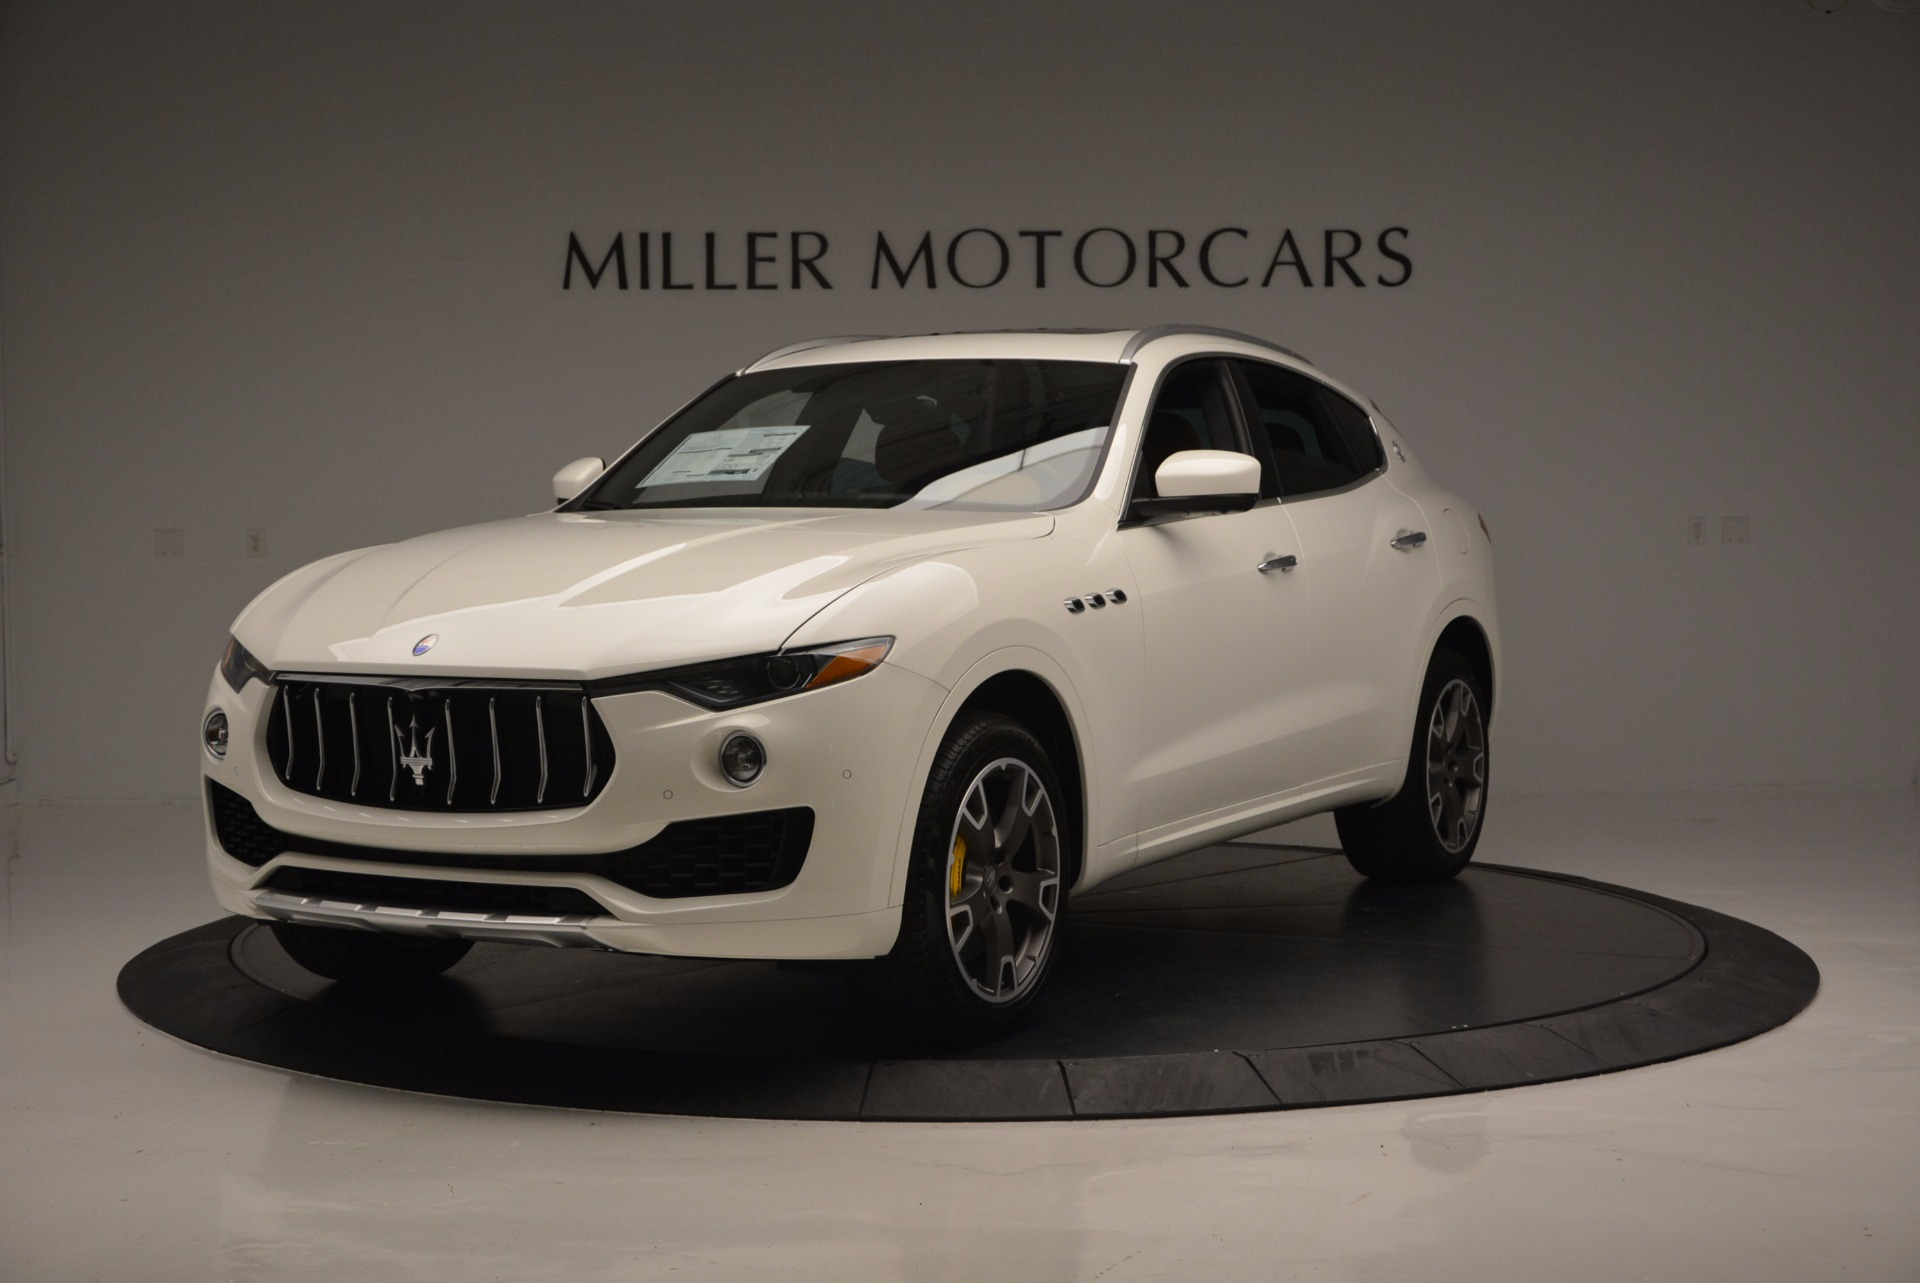 New 2017 Maserati Levante S Q4 for sale Sold at Maserati of Greenwich in Greenwich CT 06830 1